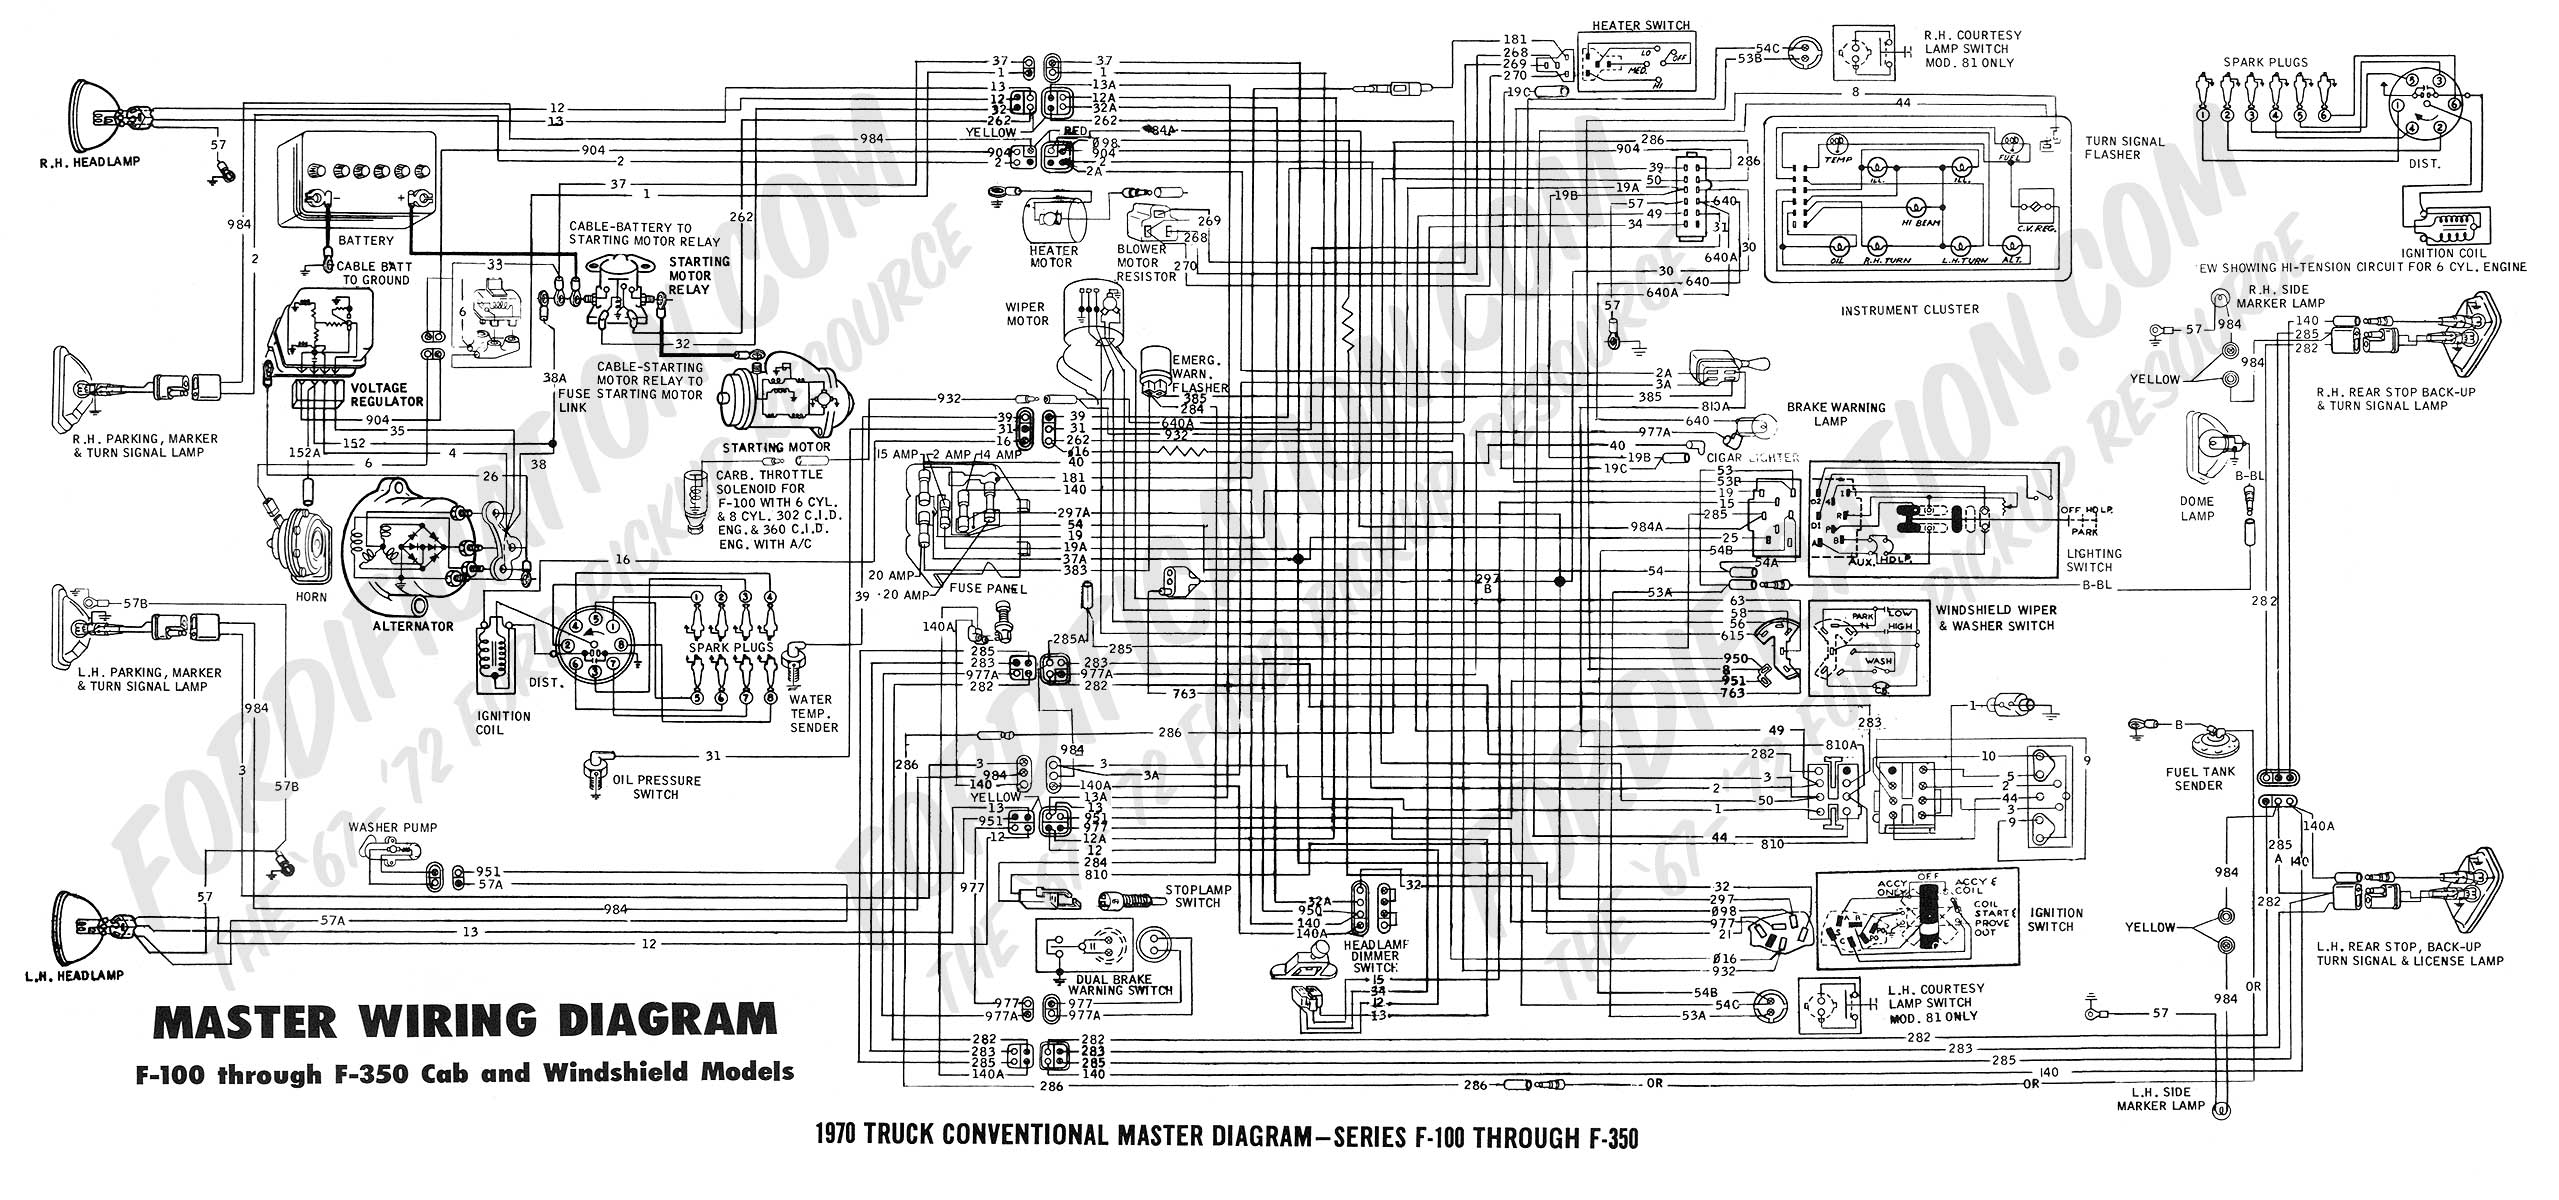 01 Ford F 250 Wiring Diagram,F.Free Download Printable Wiring Diagrams